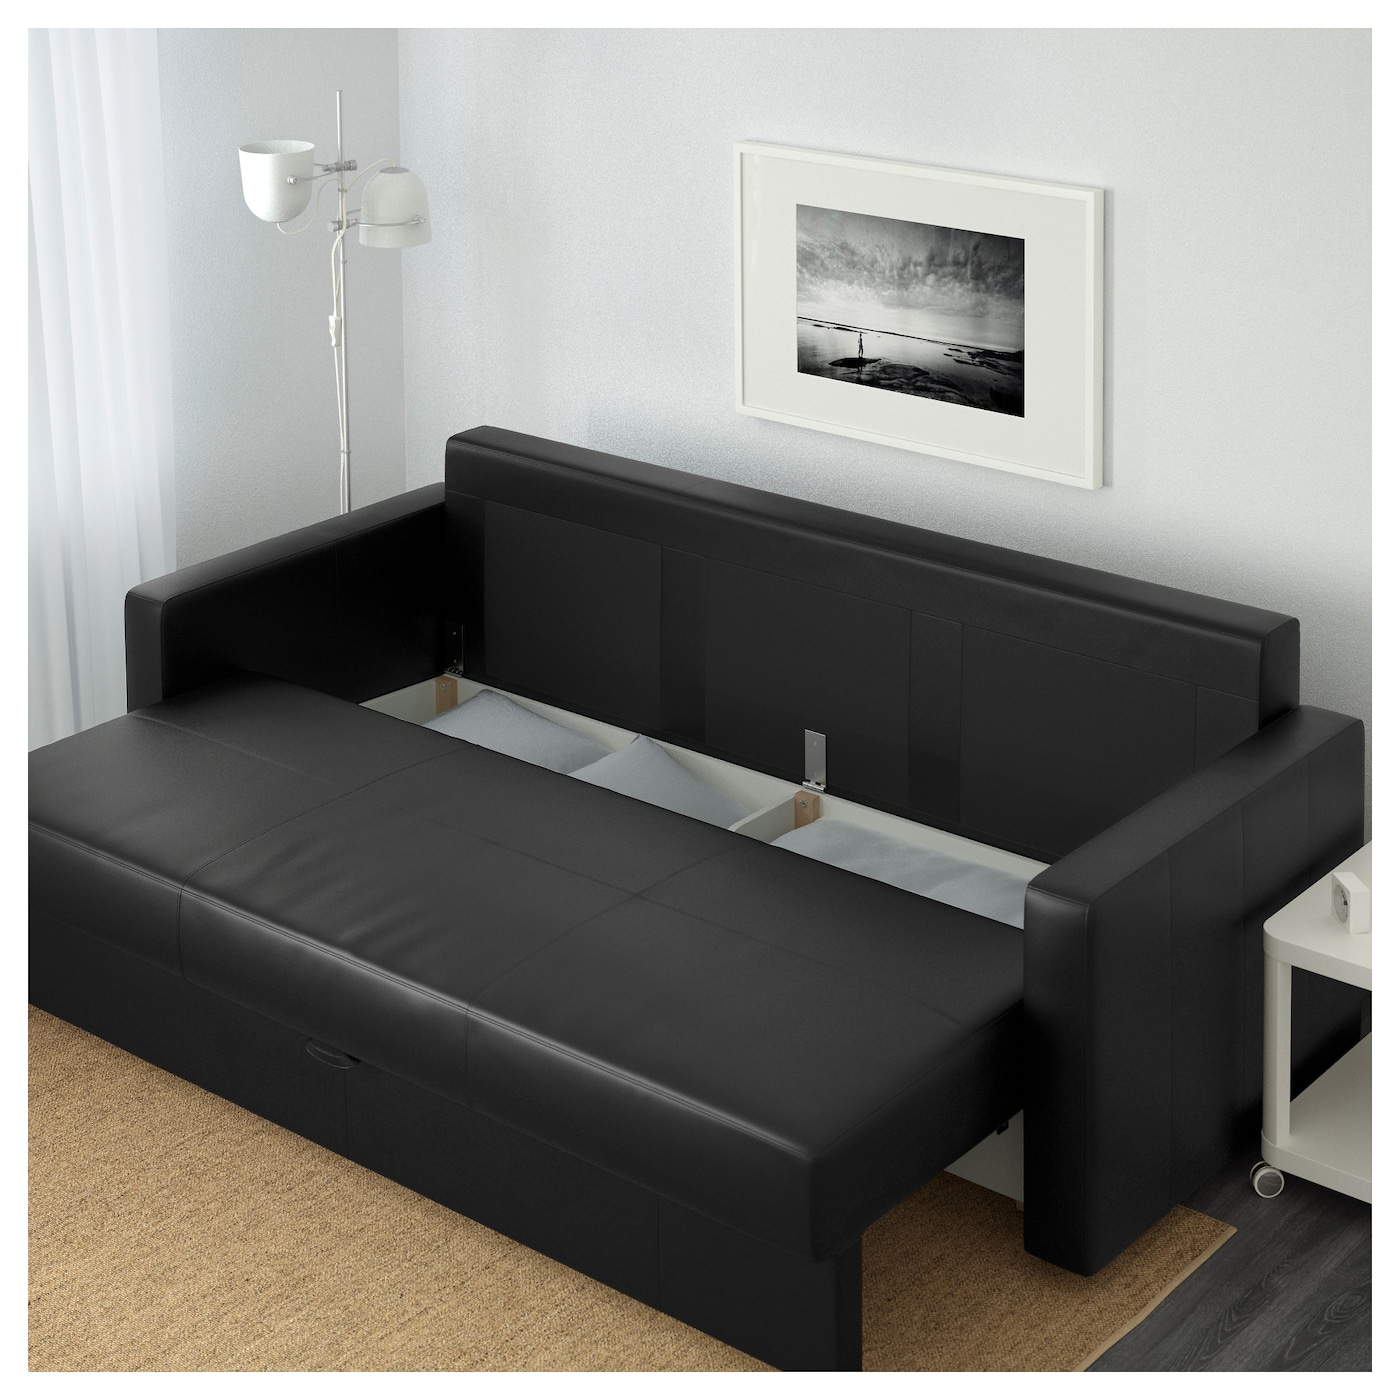 ikea friheten bomstad zwart. Black Bedroom Furniture Sets. Home Design Ideas